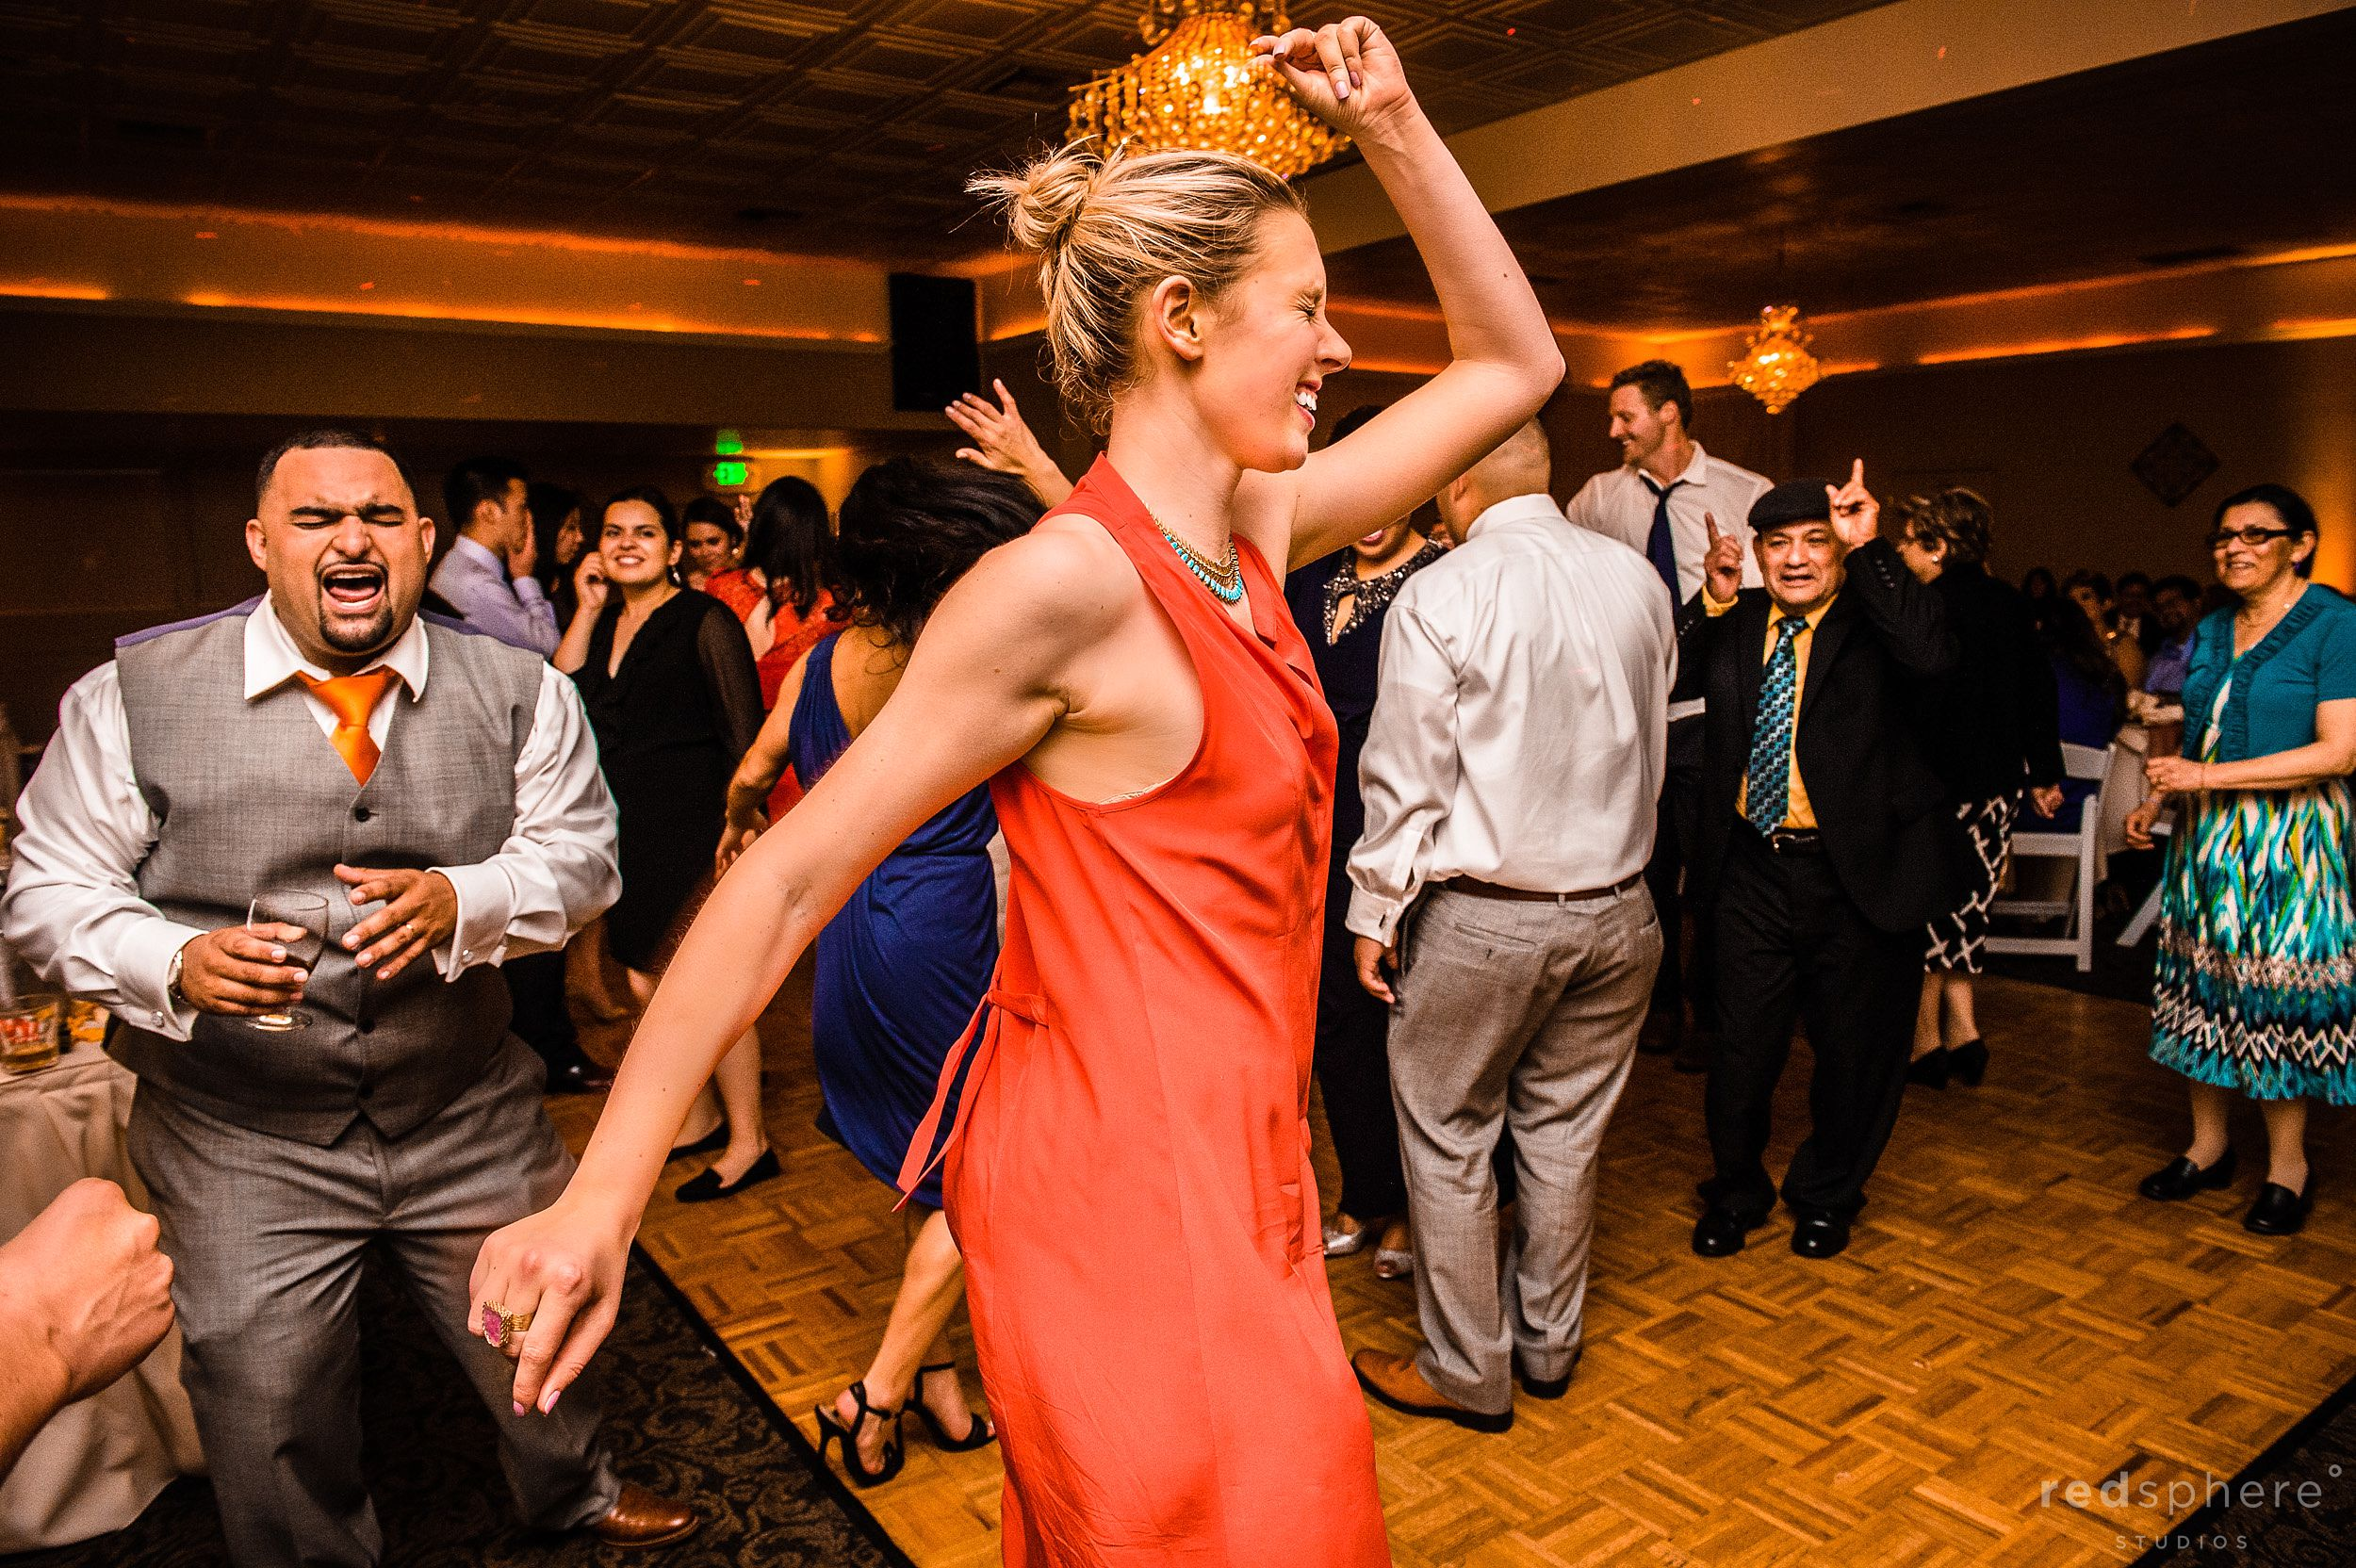 Guests Dancing and Groom Appearing in the Background